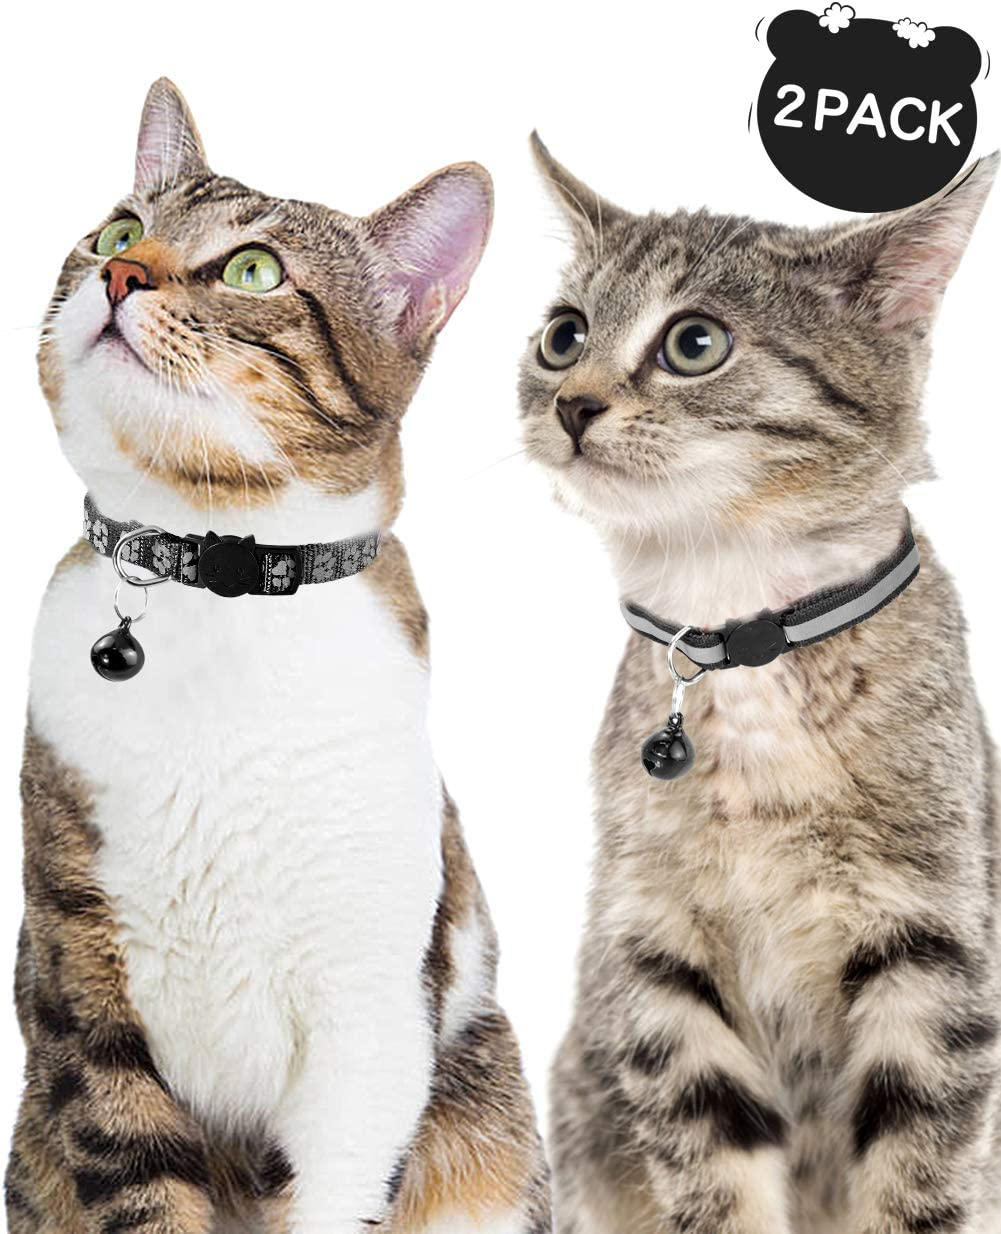 Black Reflective Fabric Cat Collars Breakaway with Bell, 2-Pack Adjustable 7.5-12.5 Inch